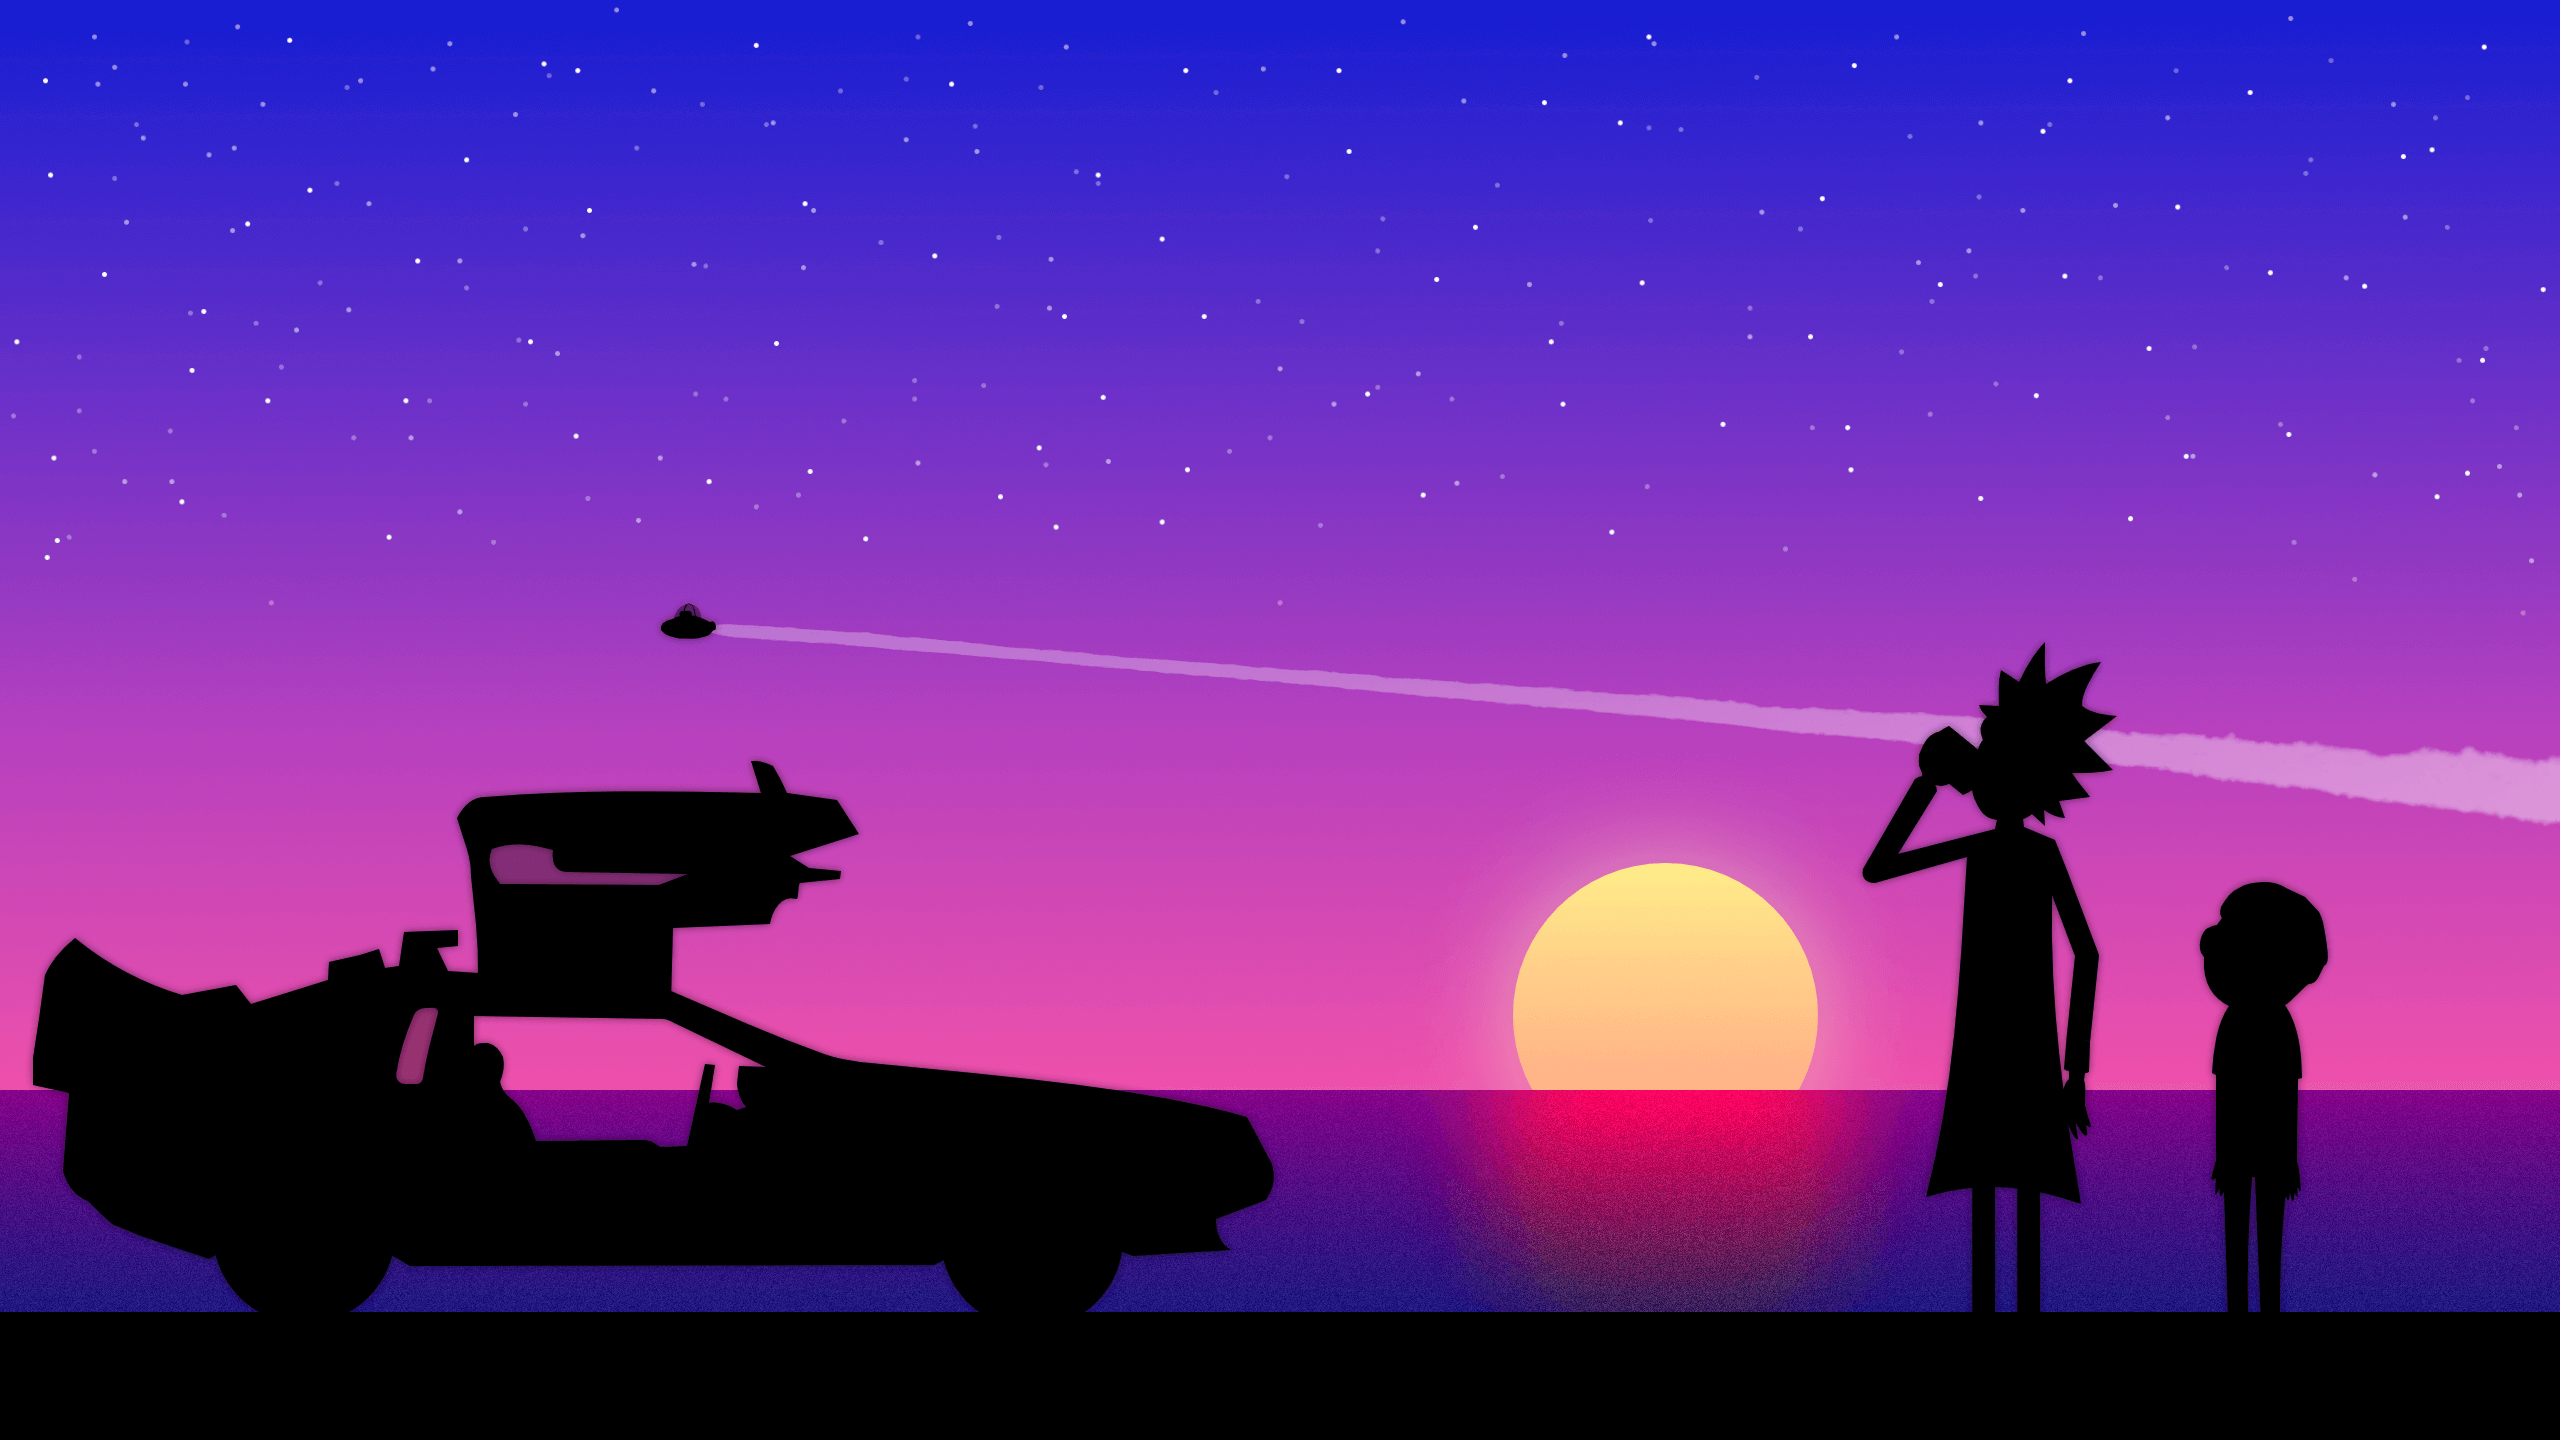 rick and morty sunset wallpaper background 63906